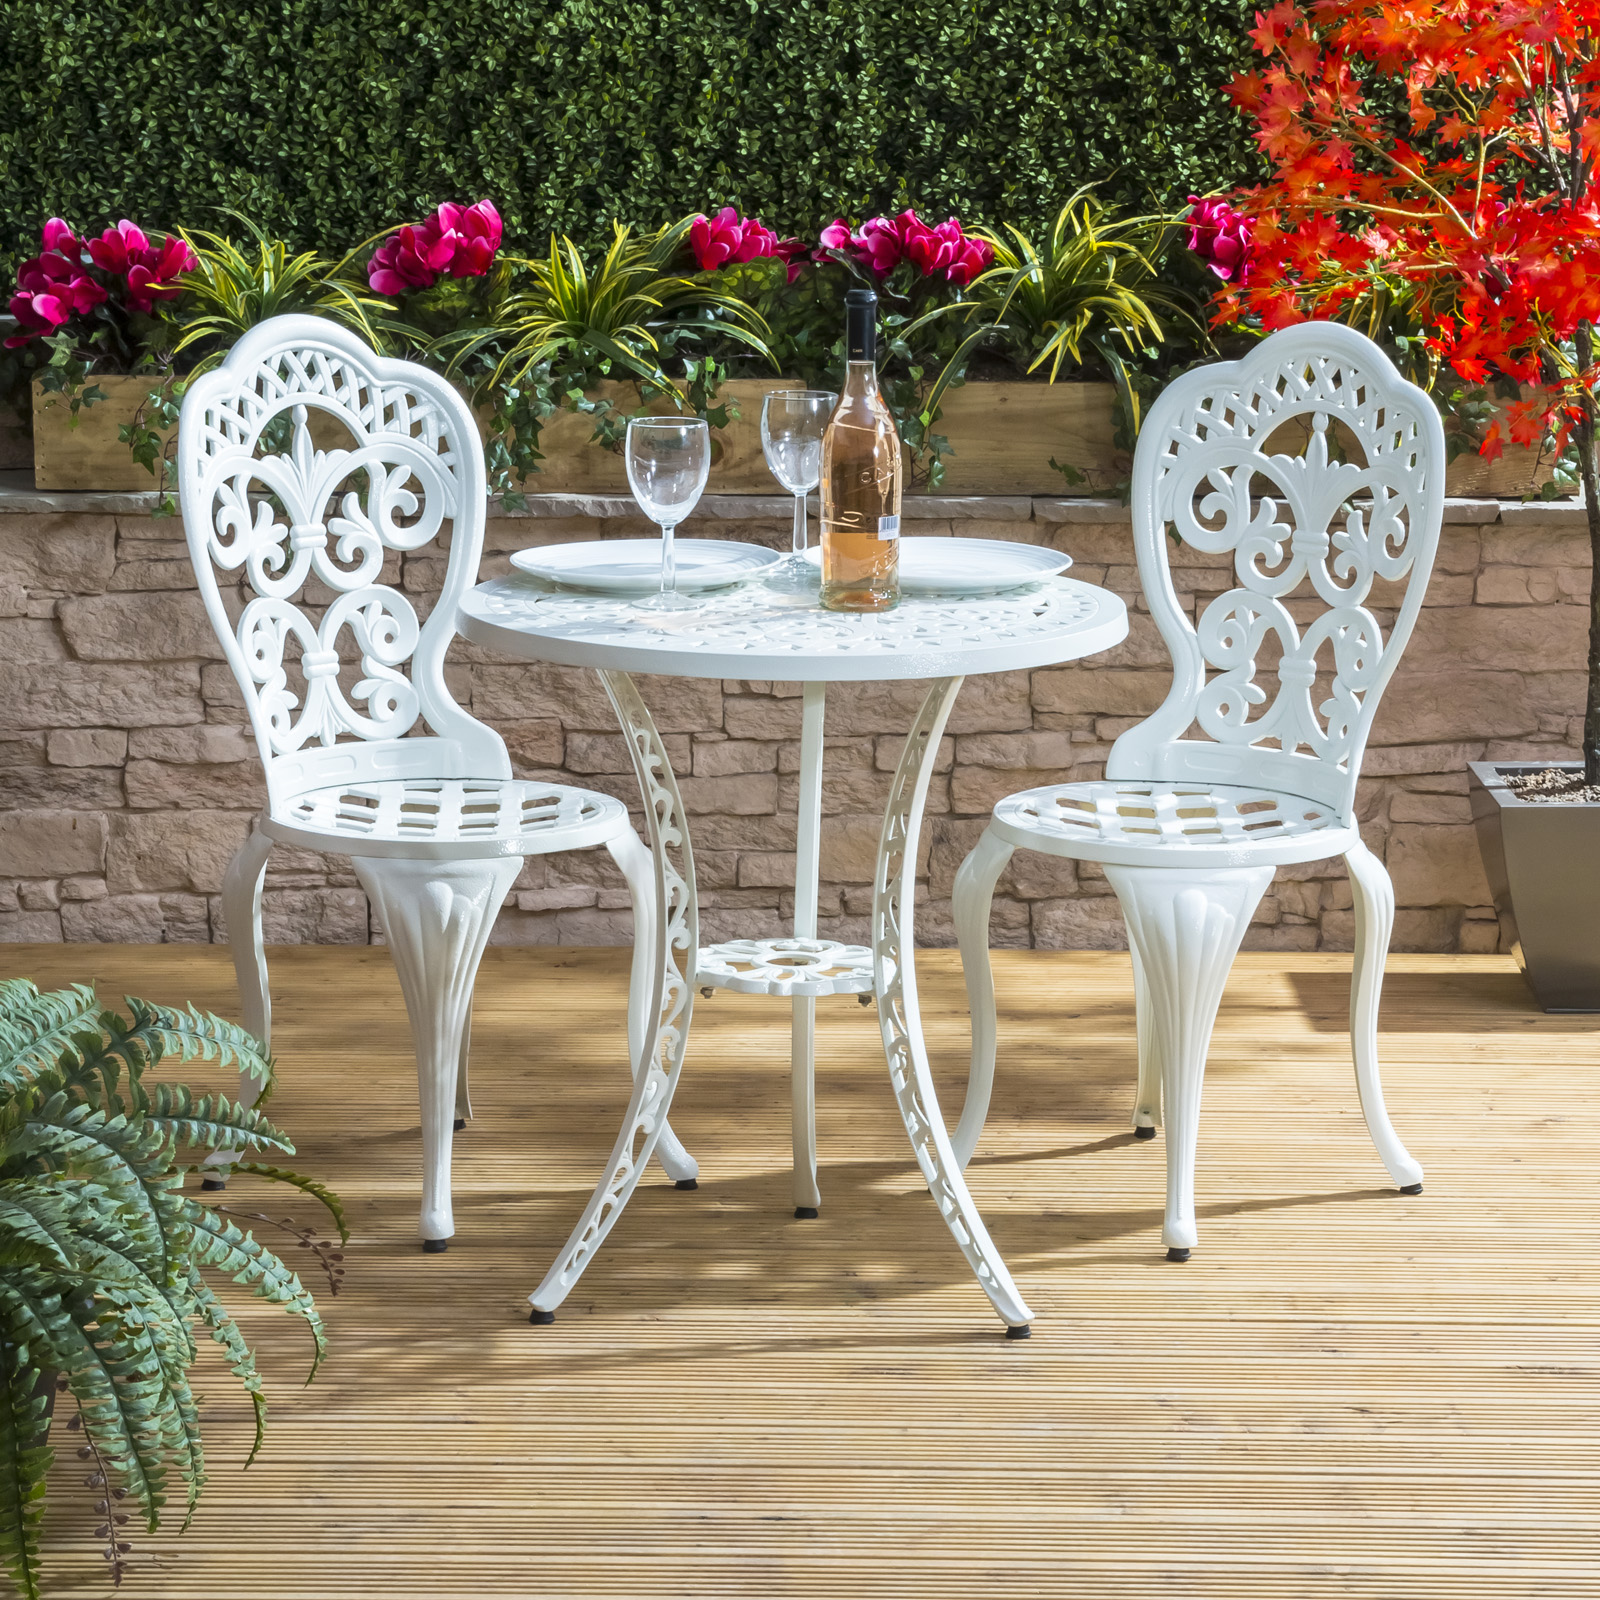 Alfresia Garden Furniture Patio Cast Aluminium Caf Bistro